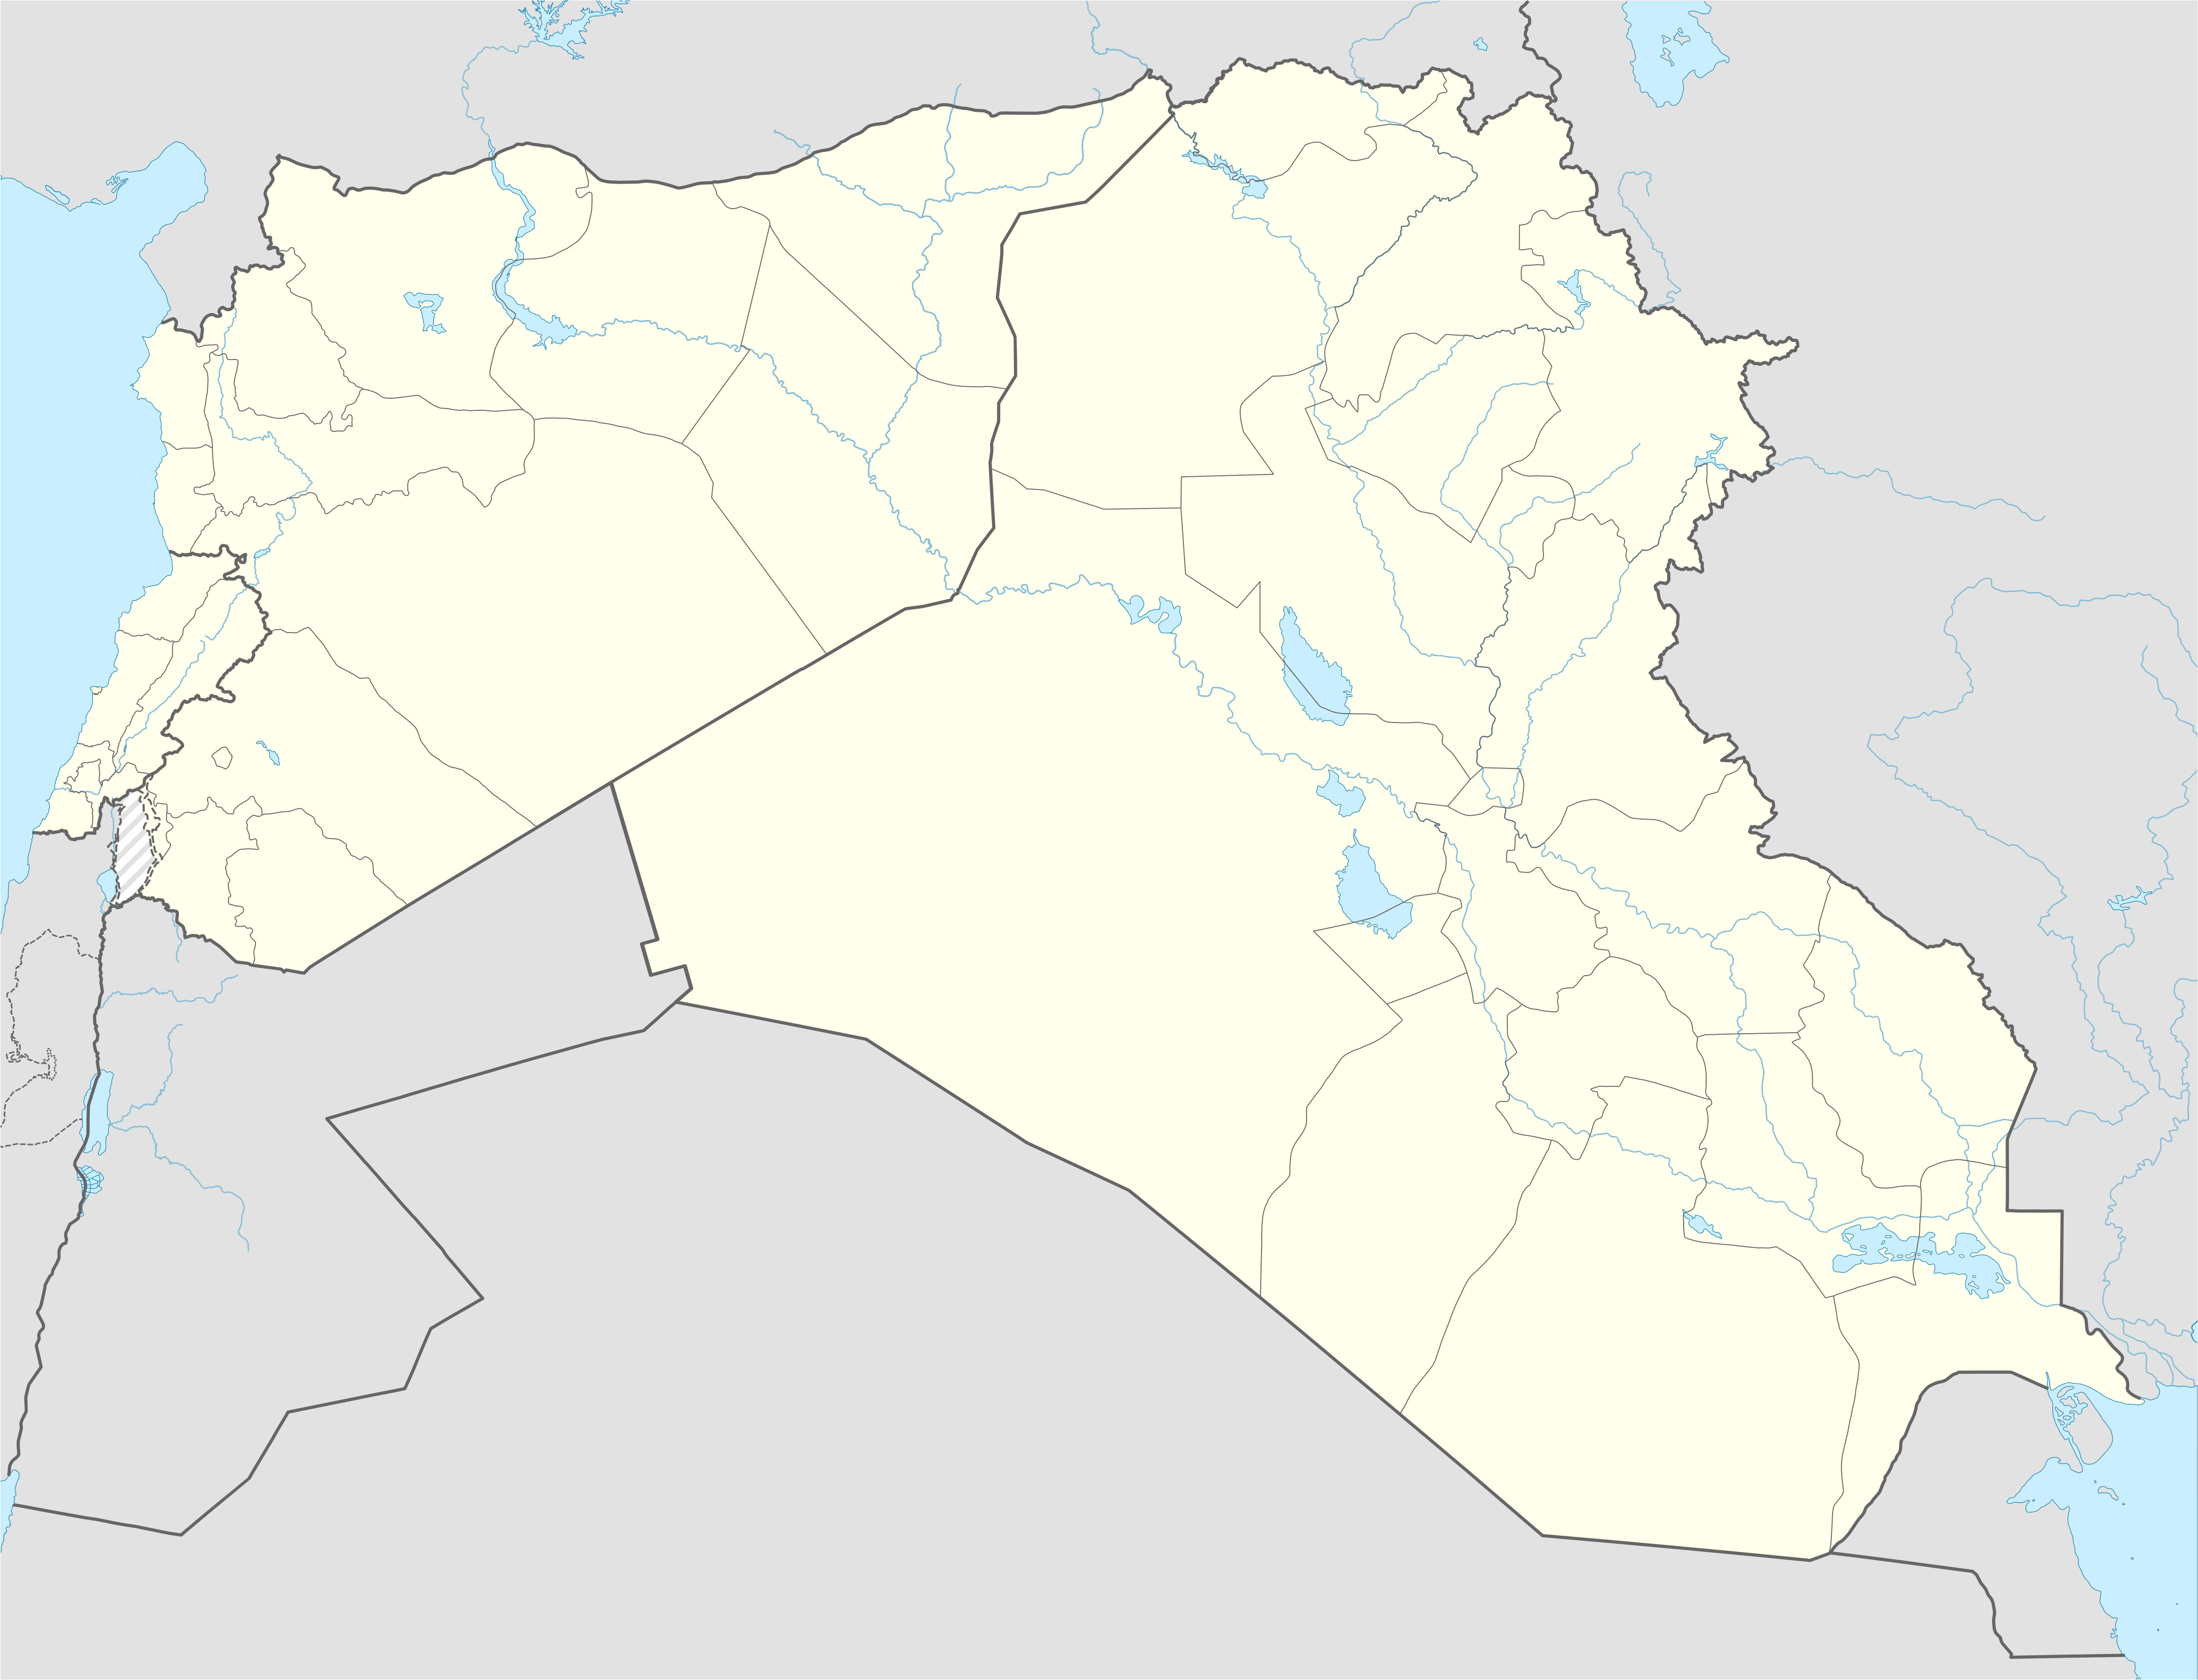 template syrian iraqi and lebanese insurgencies detailed map